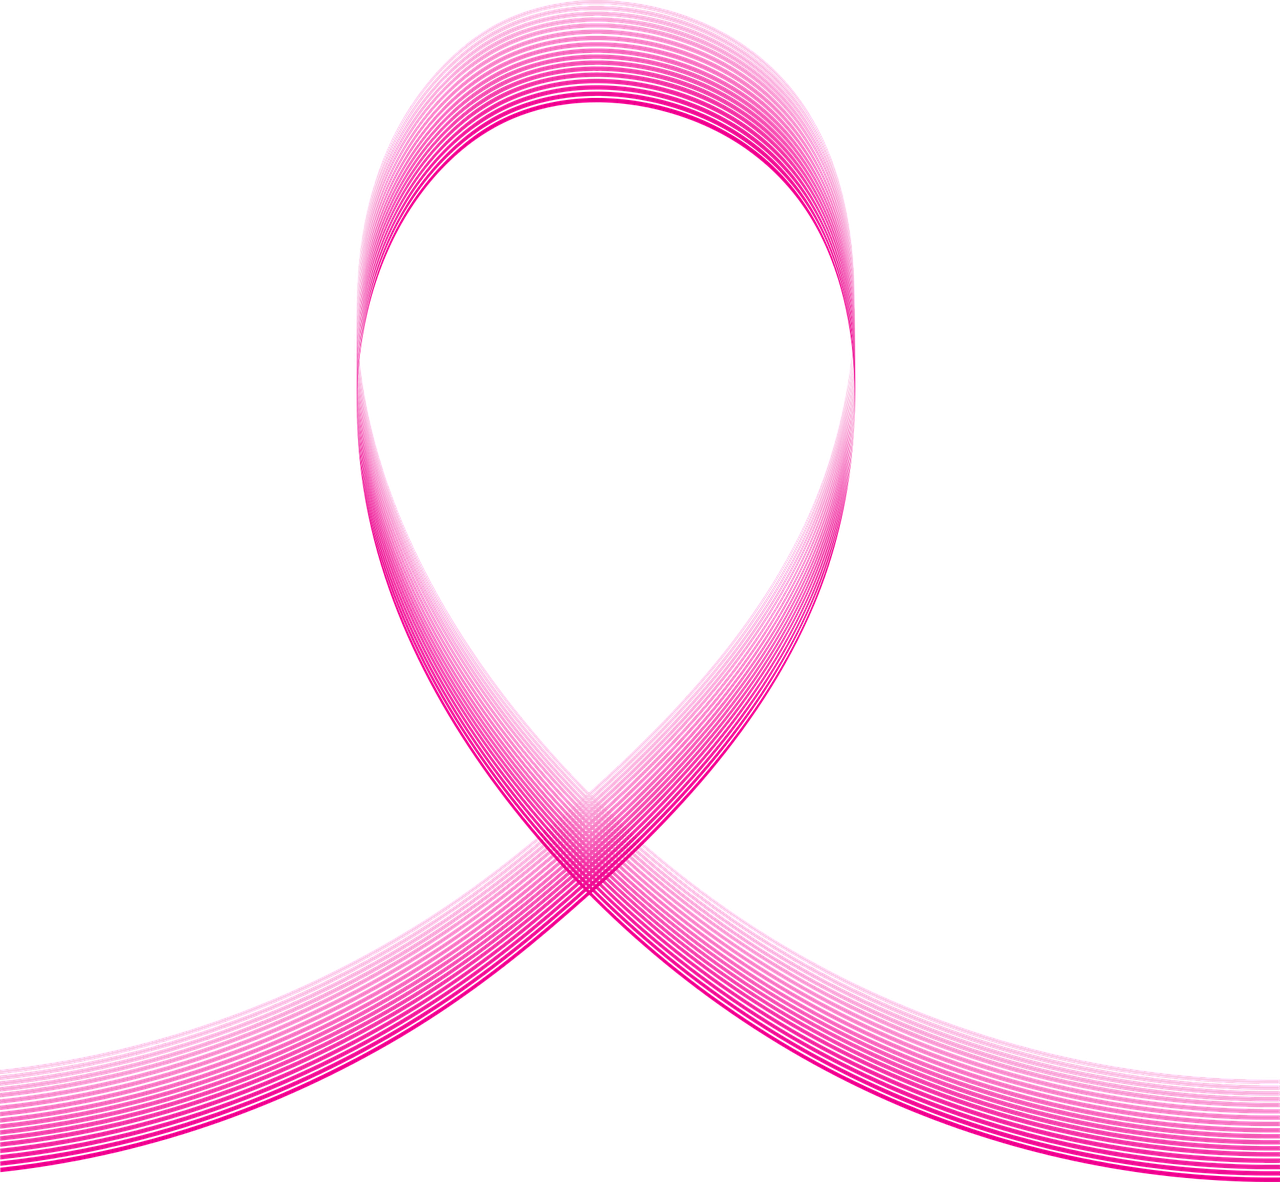 The Cinnaminson Fire Department T Cancer Awareness Committee Is Pleased To Announce This Year S Paint Town Pink Campaign